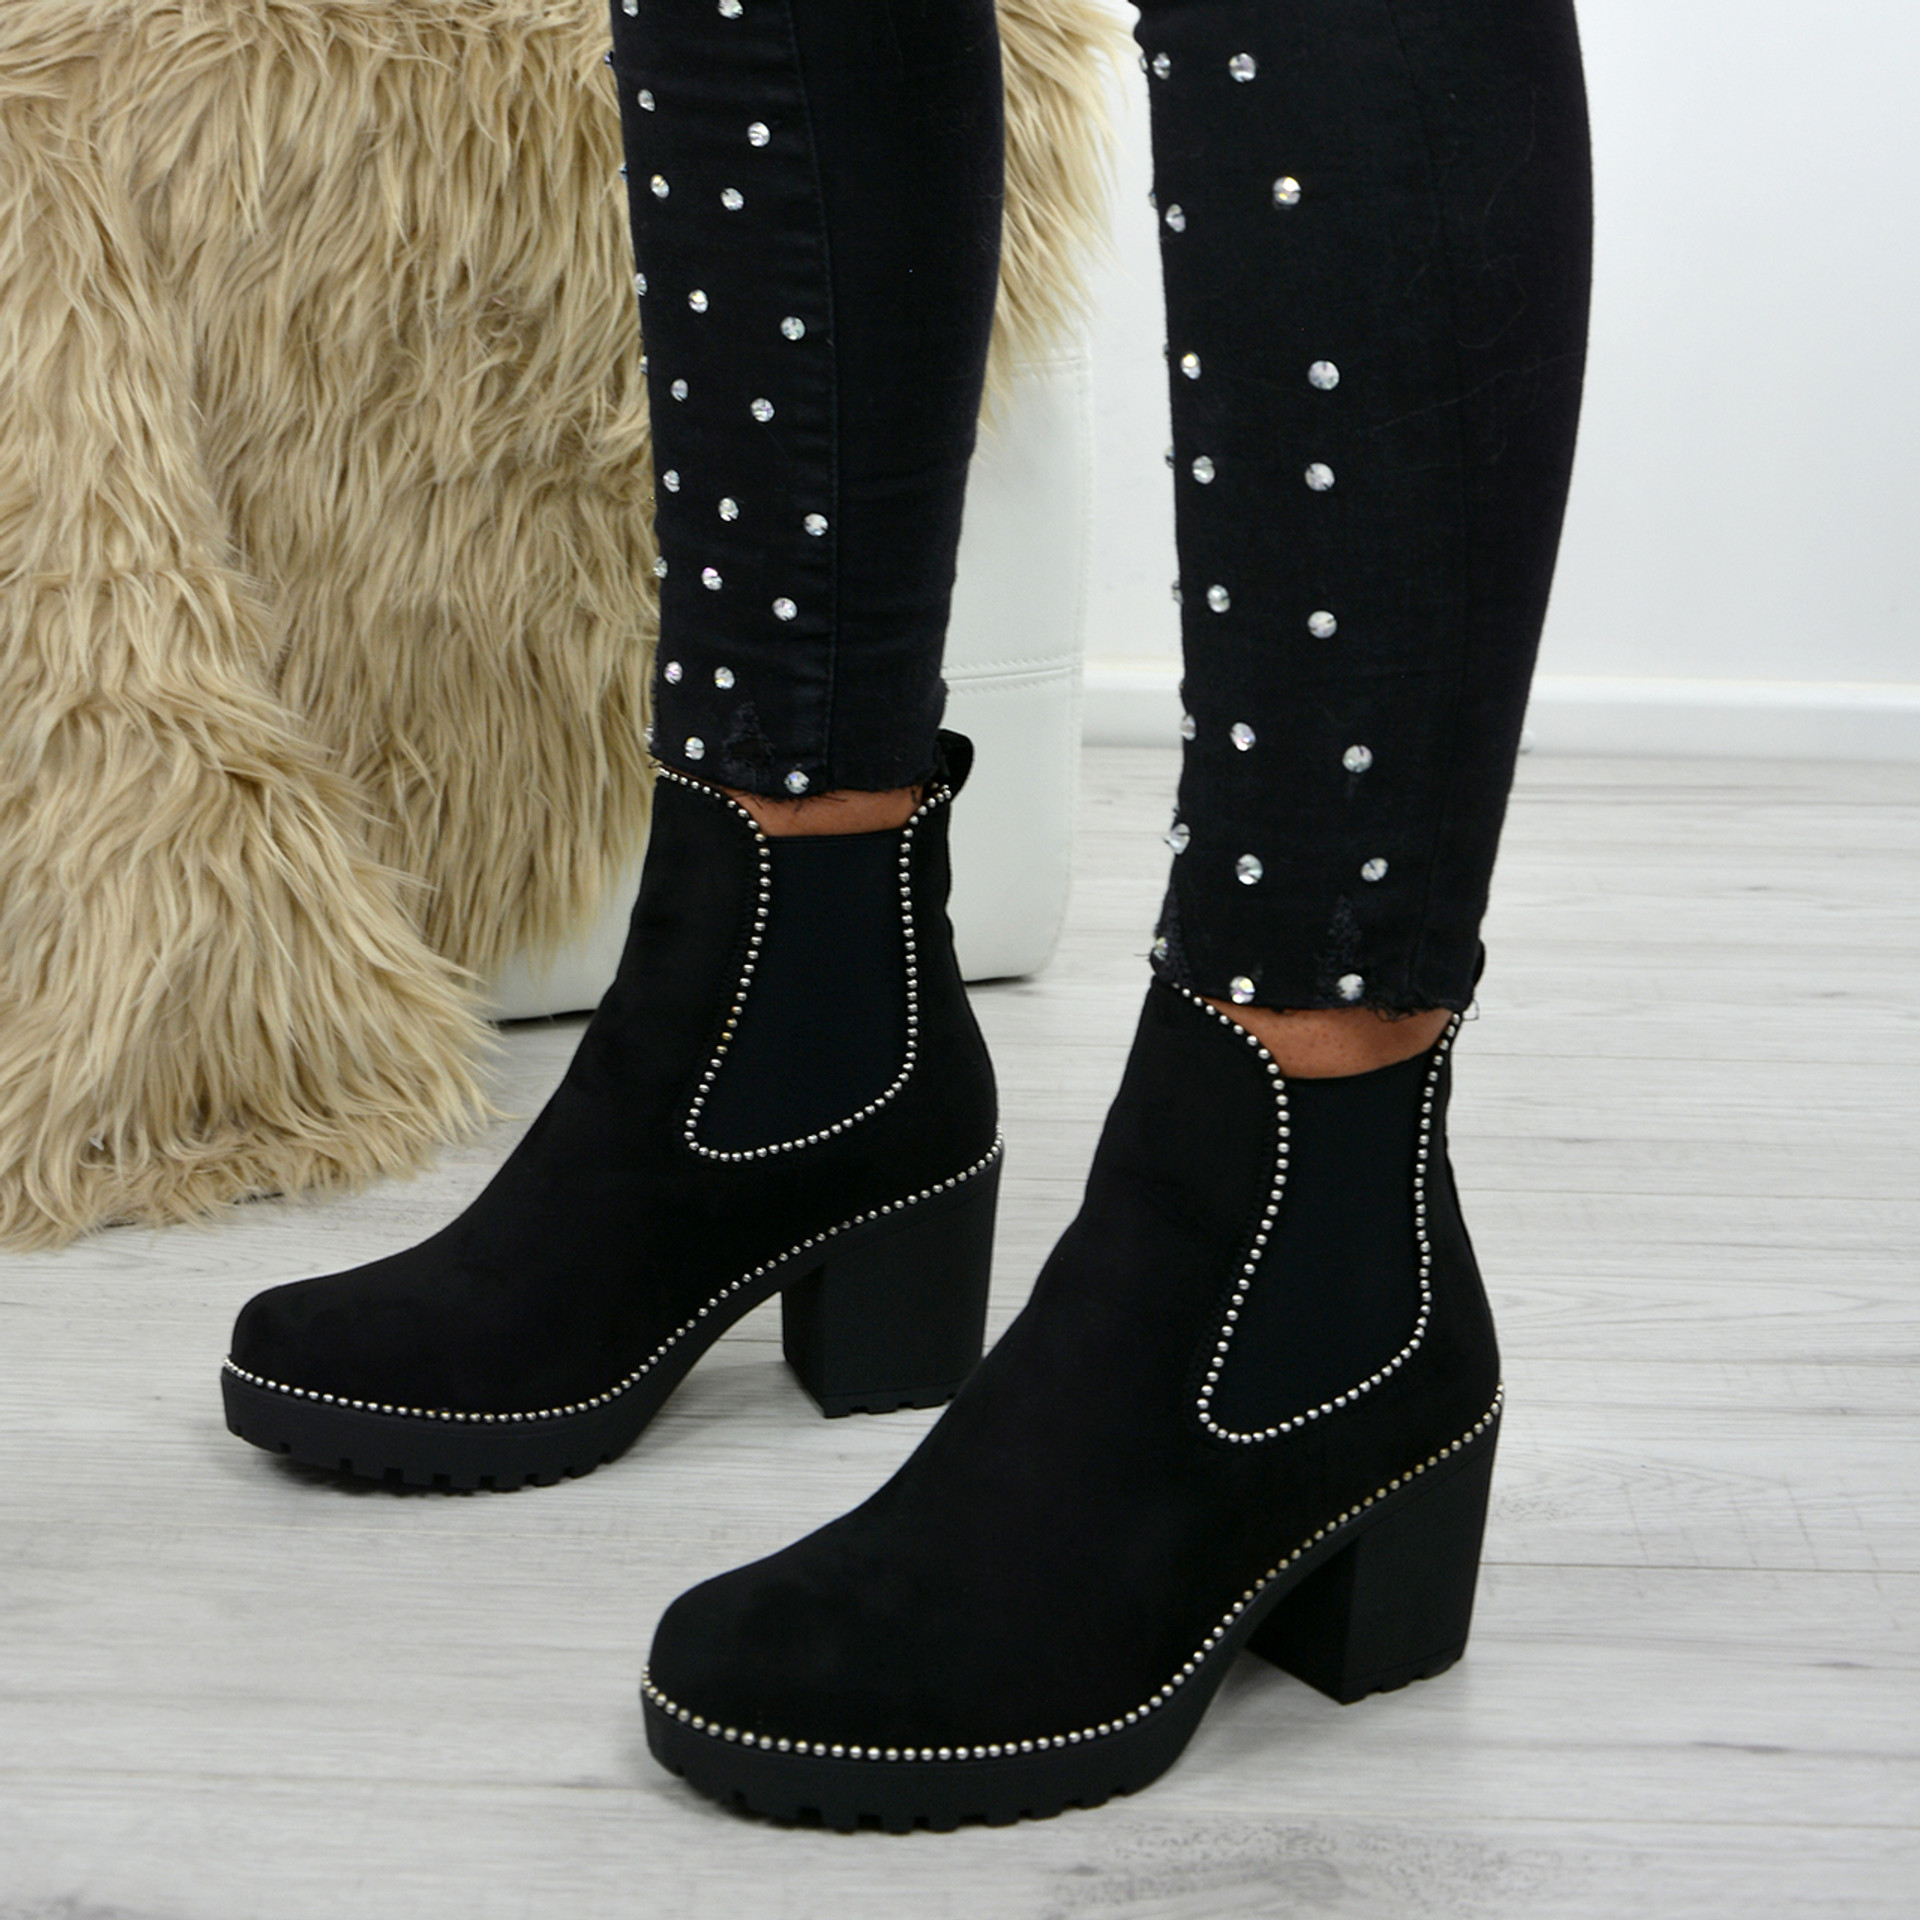 Ayana Black Suede Chunky Ankle Boots